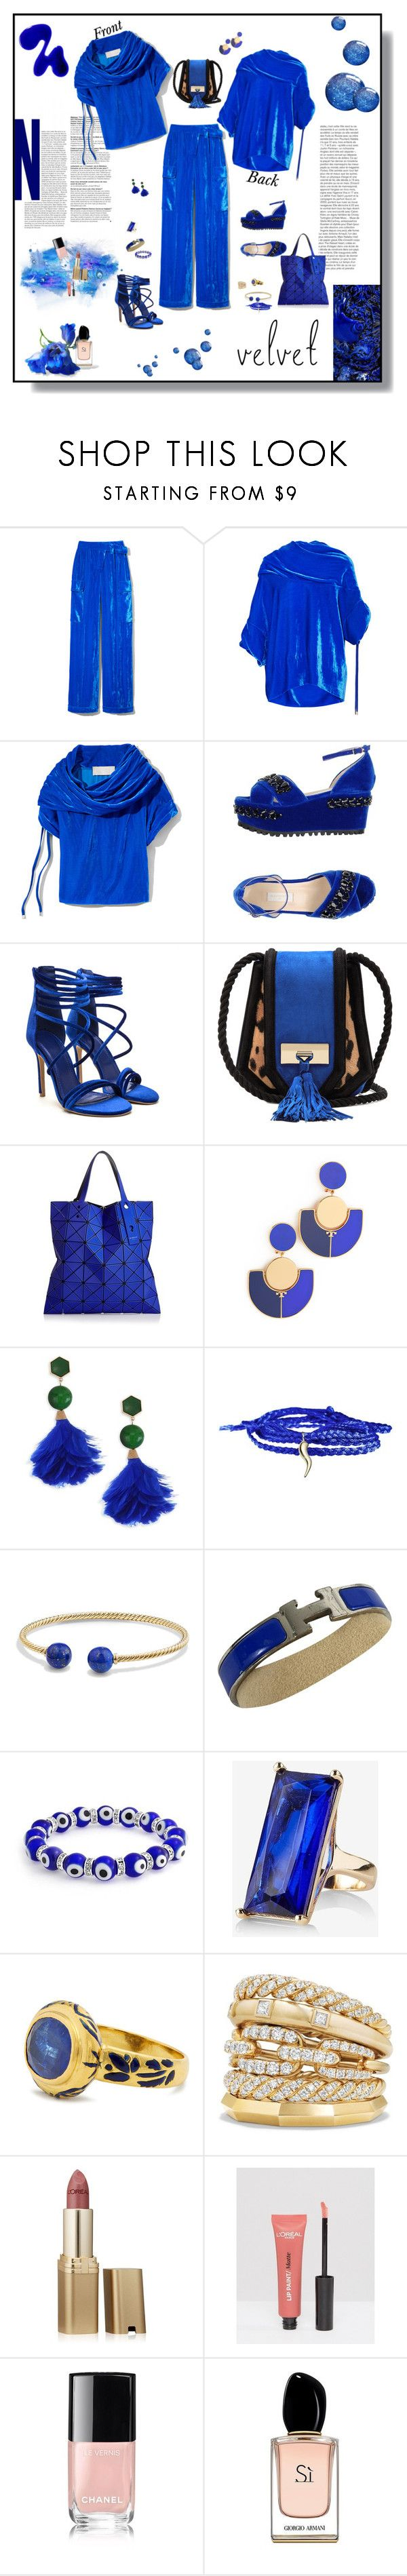 """""""Velvet Day to Night"""" by deborah-518 ❤ liked on Polyvore featuring Monse, L'Autre Chose, Balmain, Issey Miyake, Tory Burch, Minor Obsessions, David Yurman, Hermès, Express and Jade Jagger"""